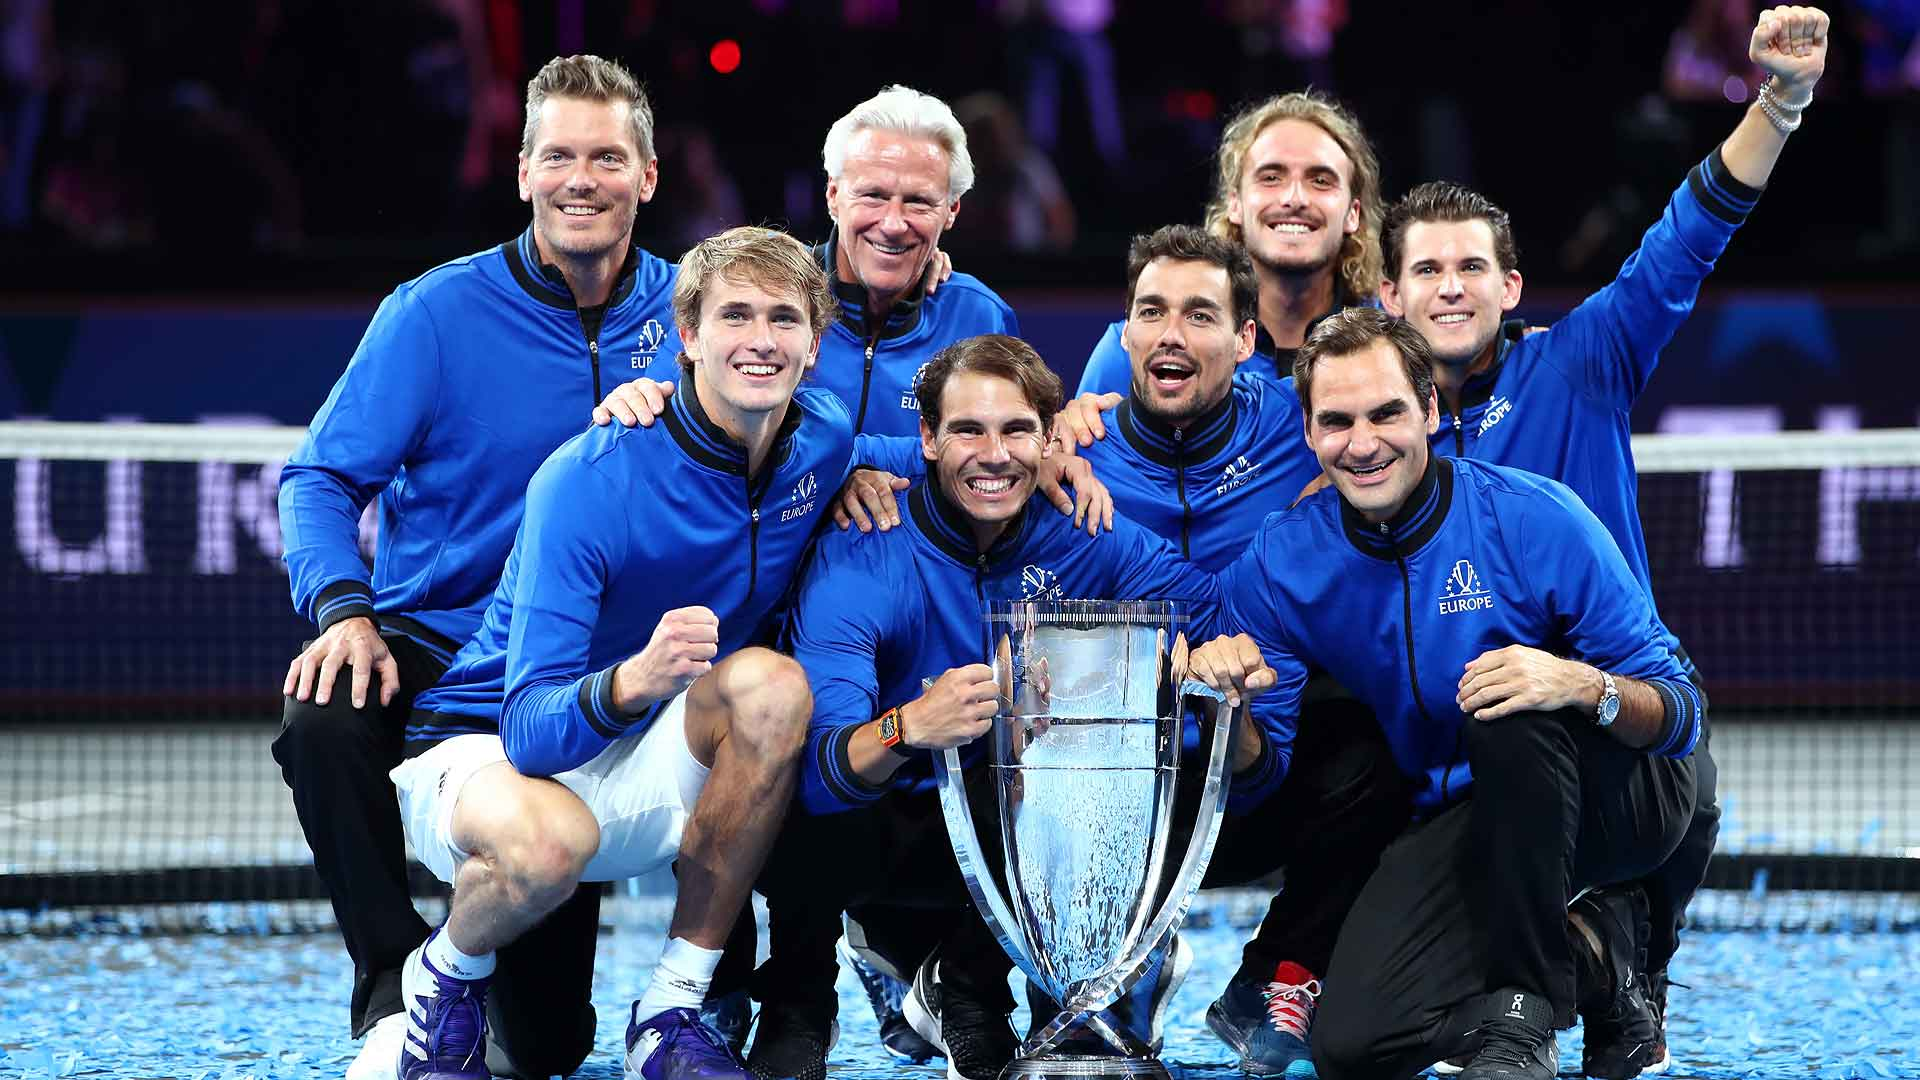 lavercup_tournimage_2019